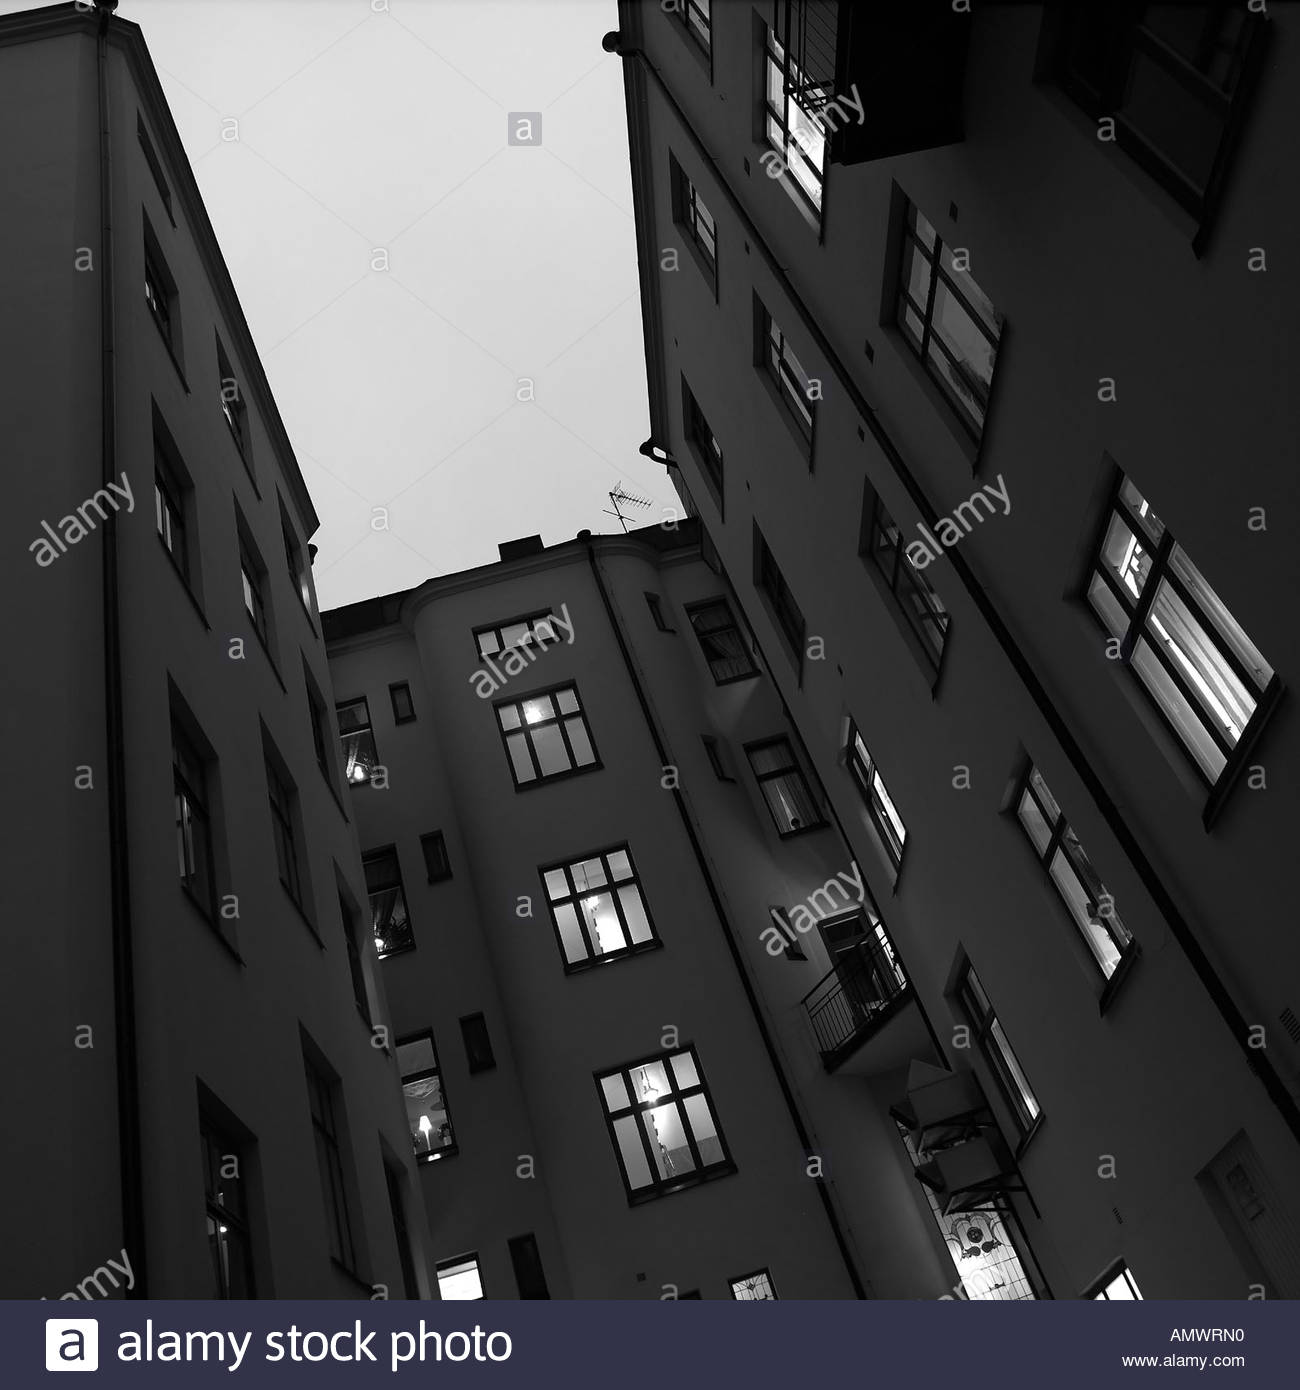 An apartment building in the evening - Stock Image